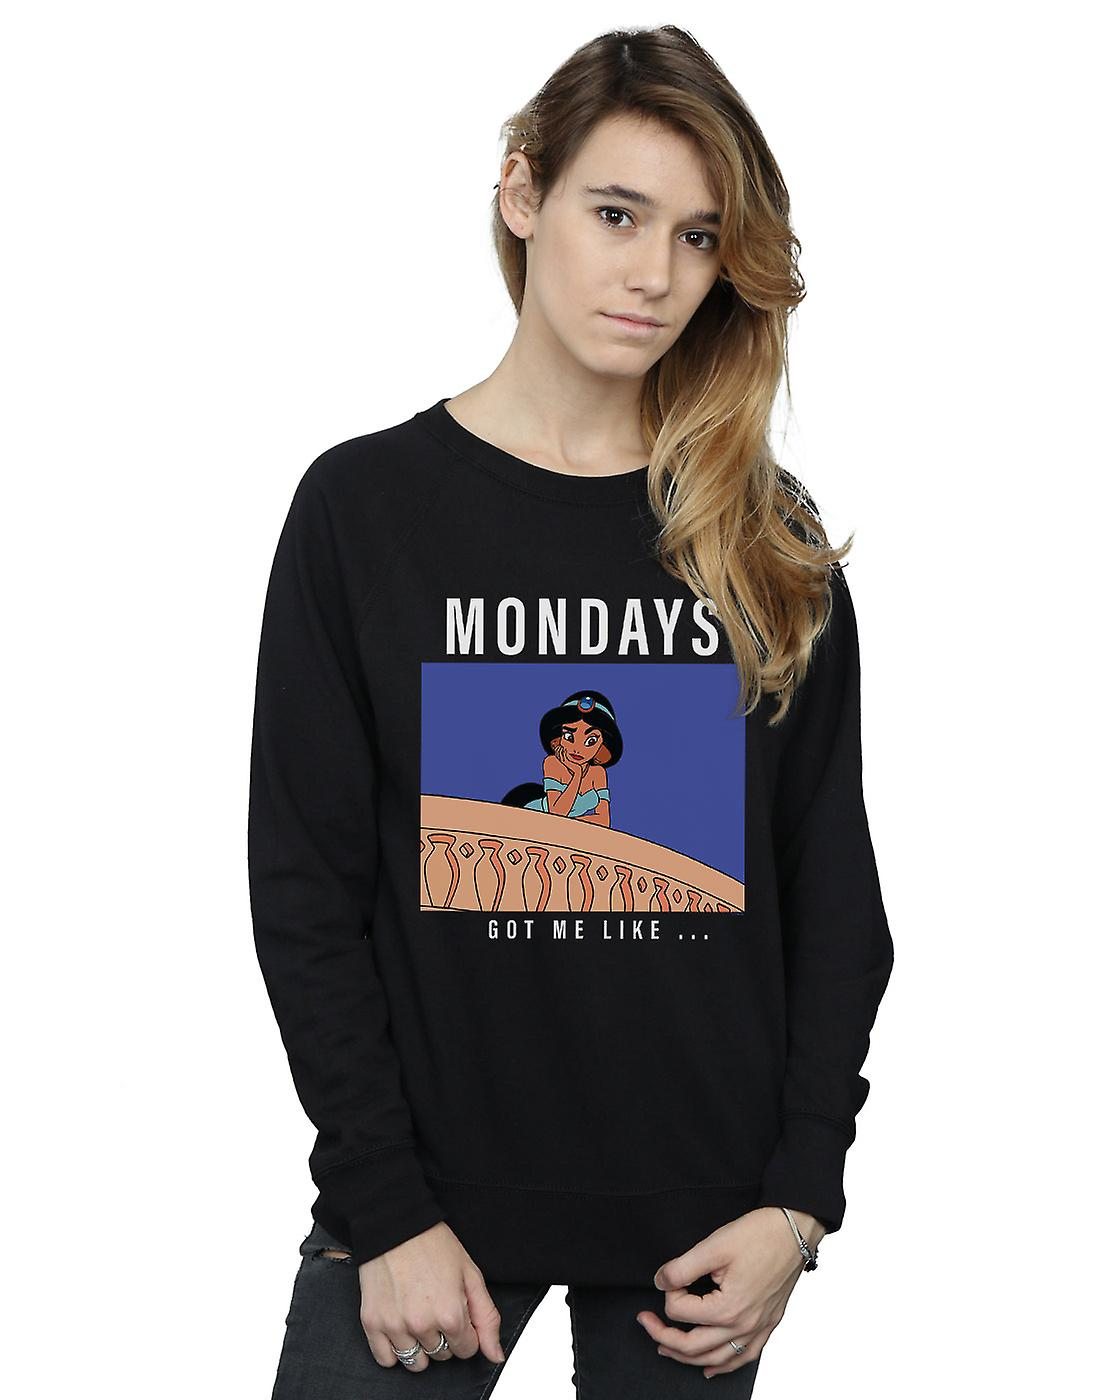 Disney Princess Women's Jasmine Mondays Got Me Like Sweatshirt